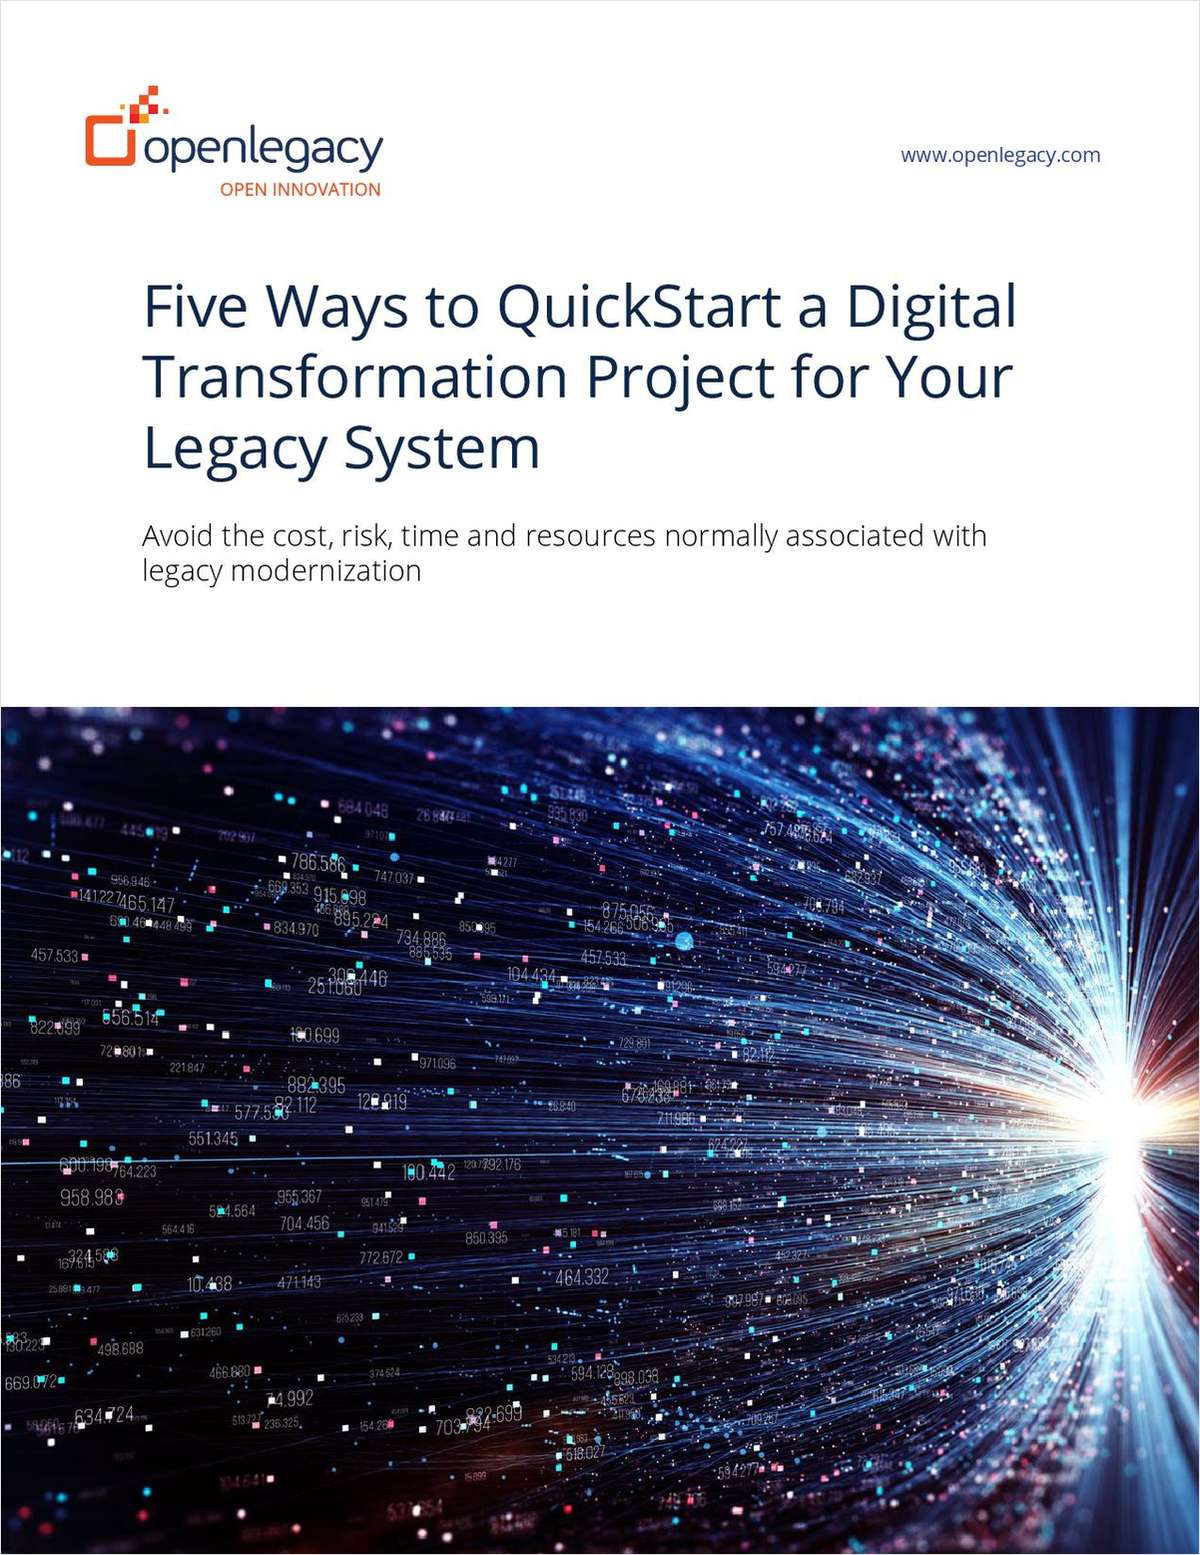 Five Ways to QuickStart a Digital Transformation Project for Your Legacy System